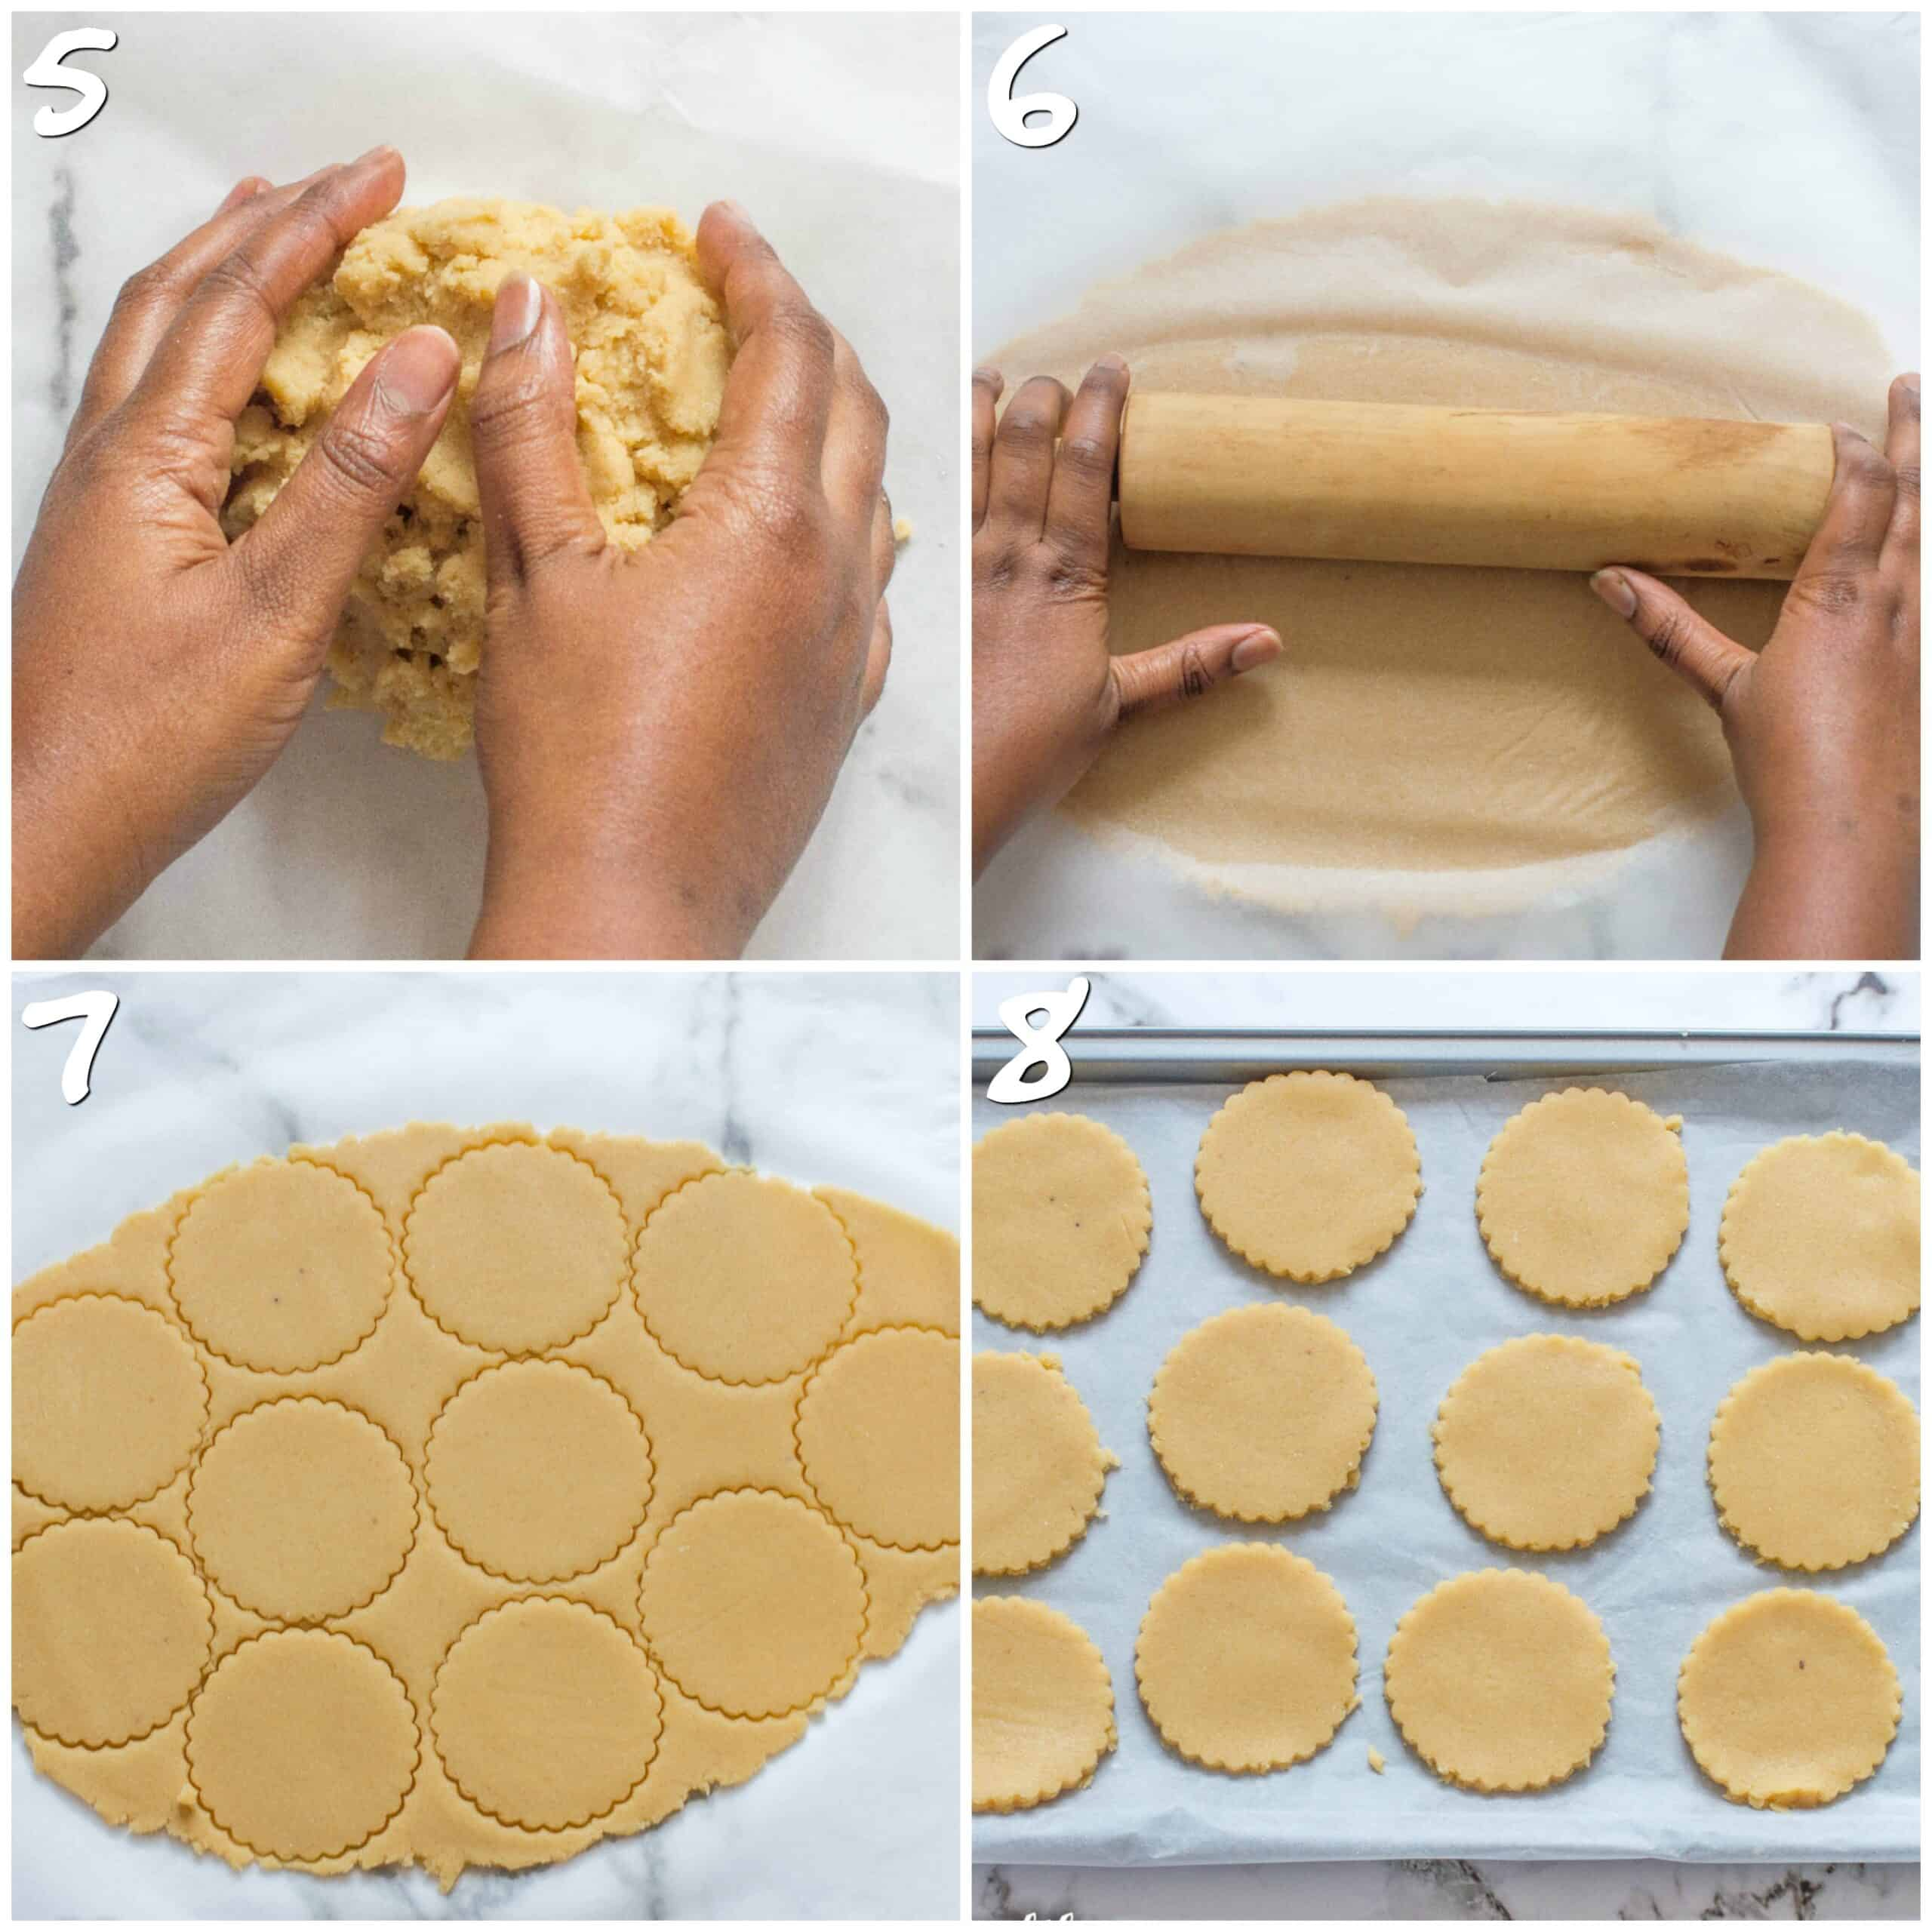 steps5-8 cutting out the cookies